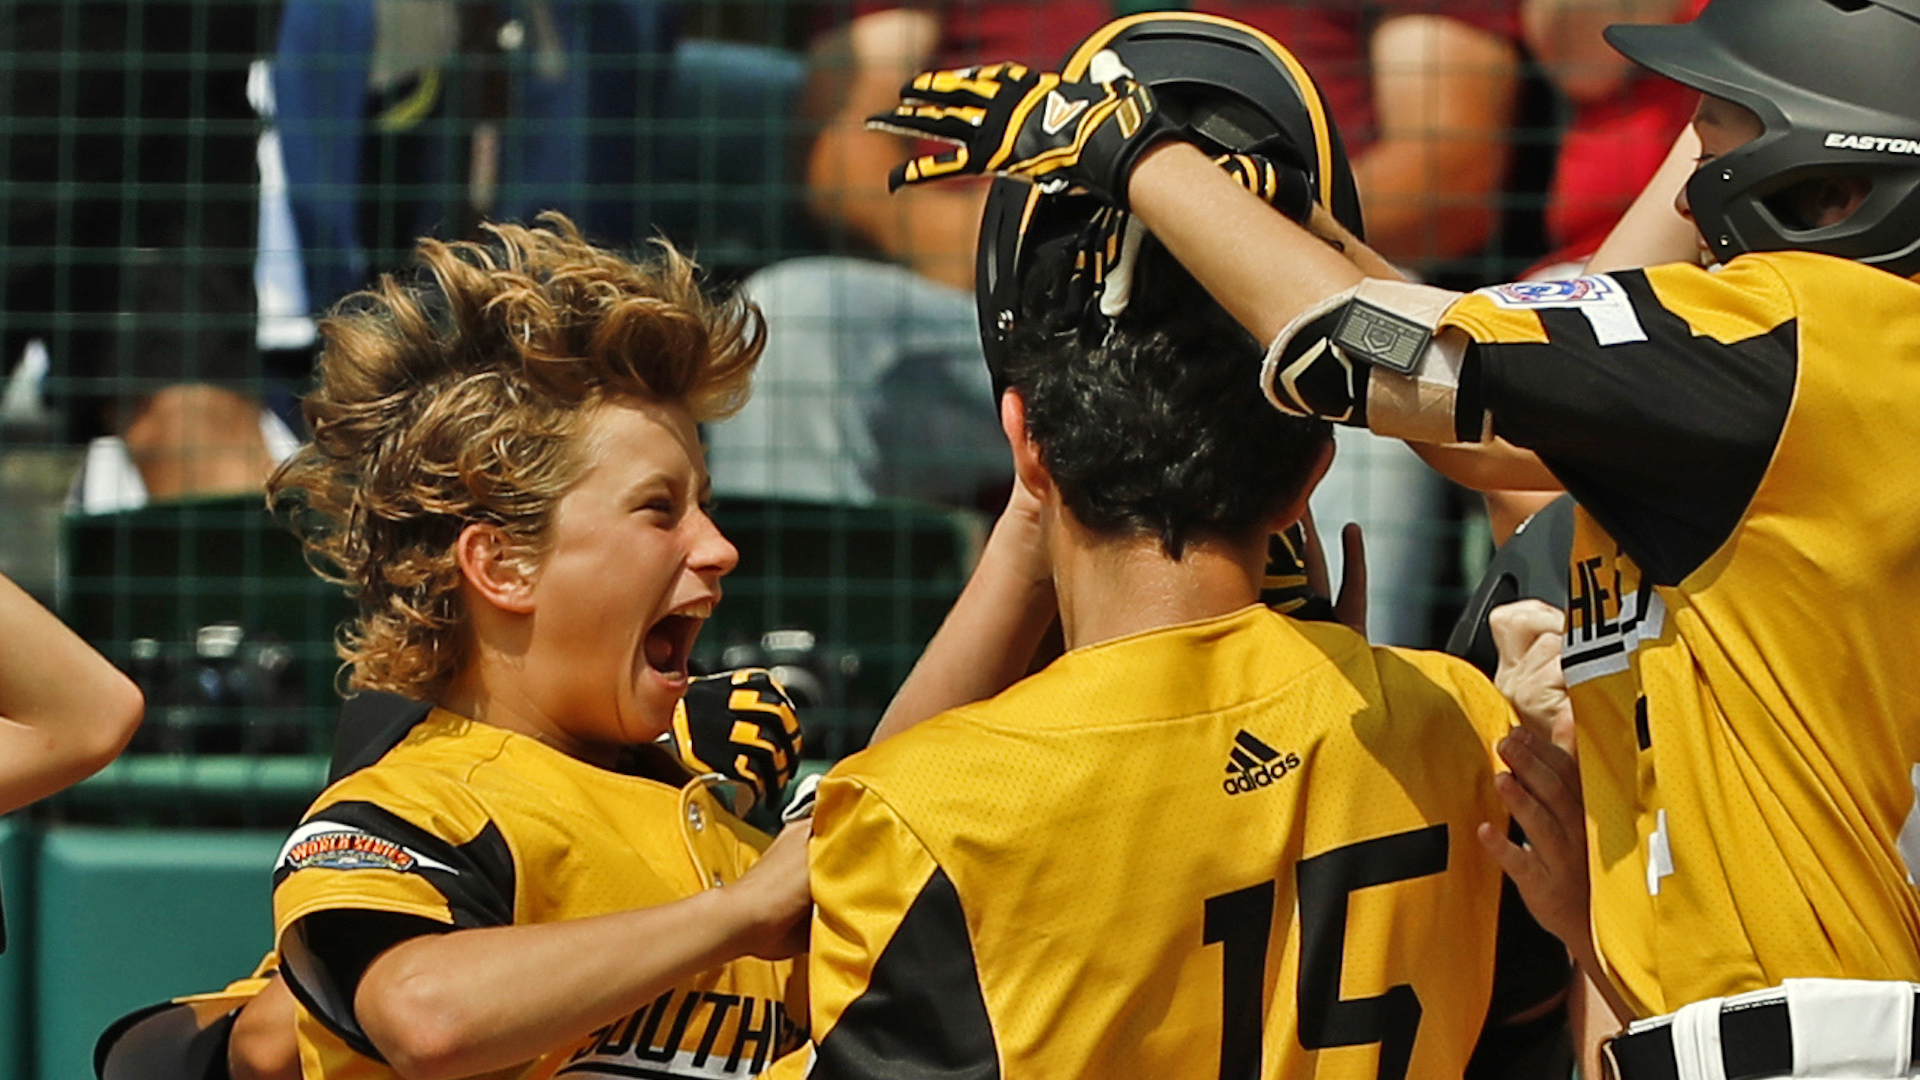 The LLWS is here and Loudoun South looking to make history.